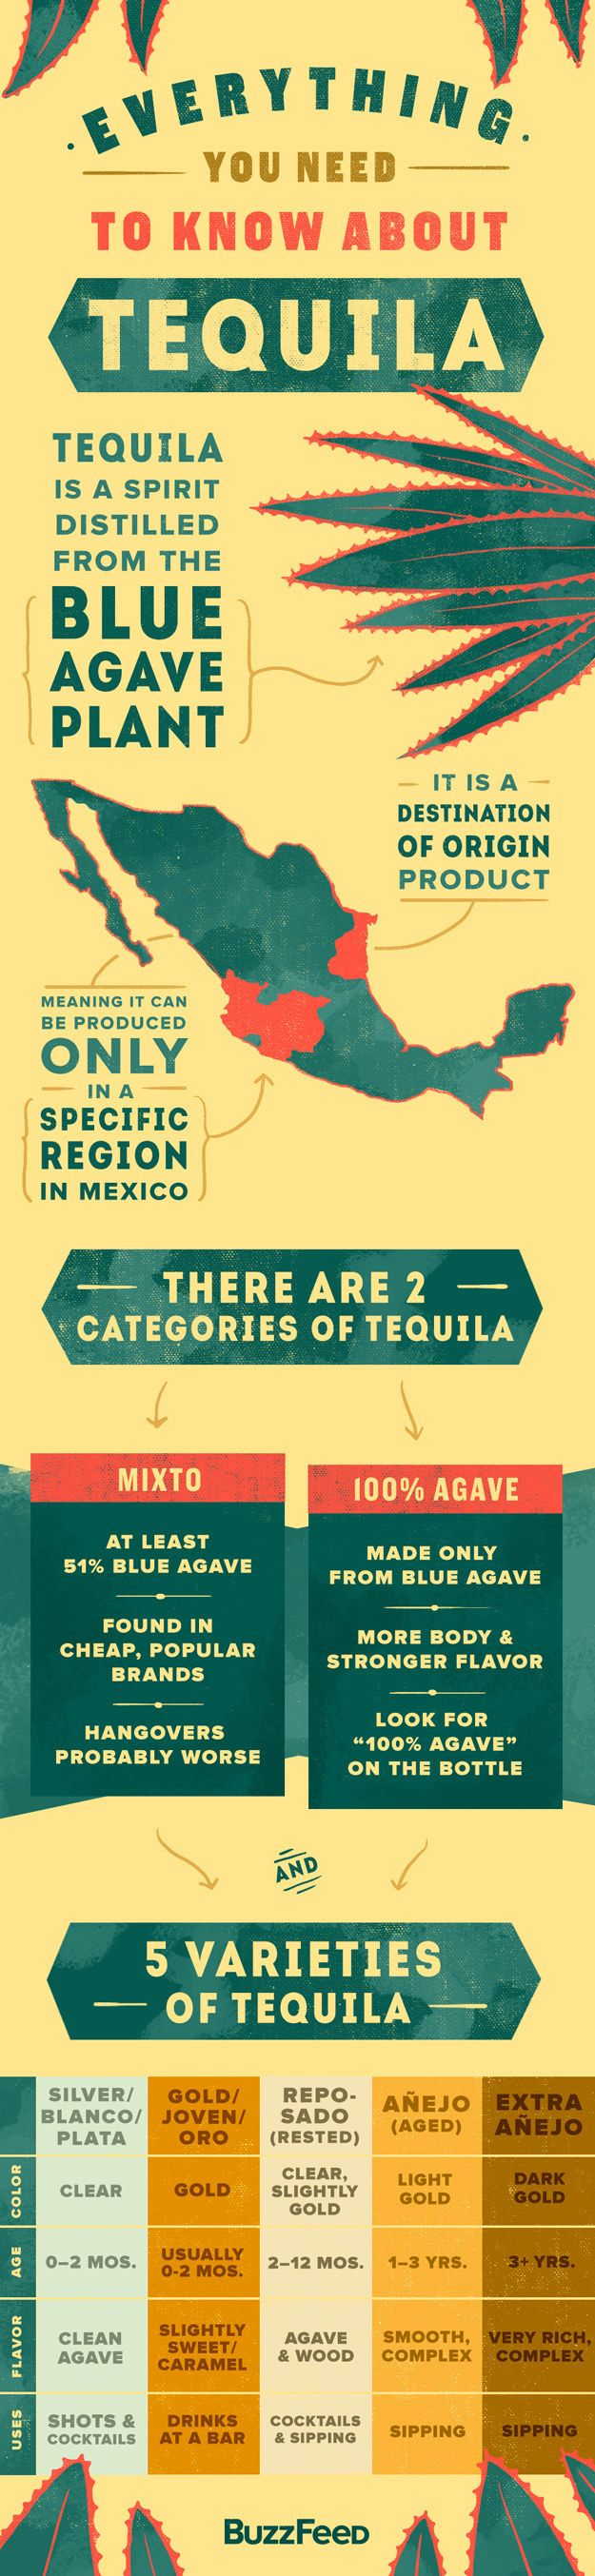 Got all that? Here's a tequila cheat sheet to pin for later: